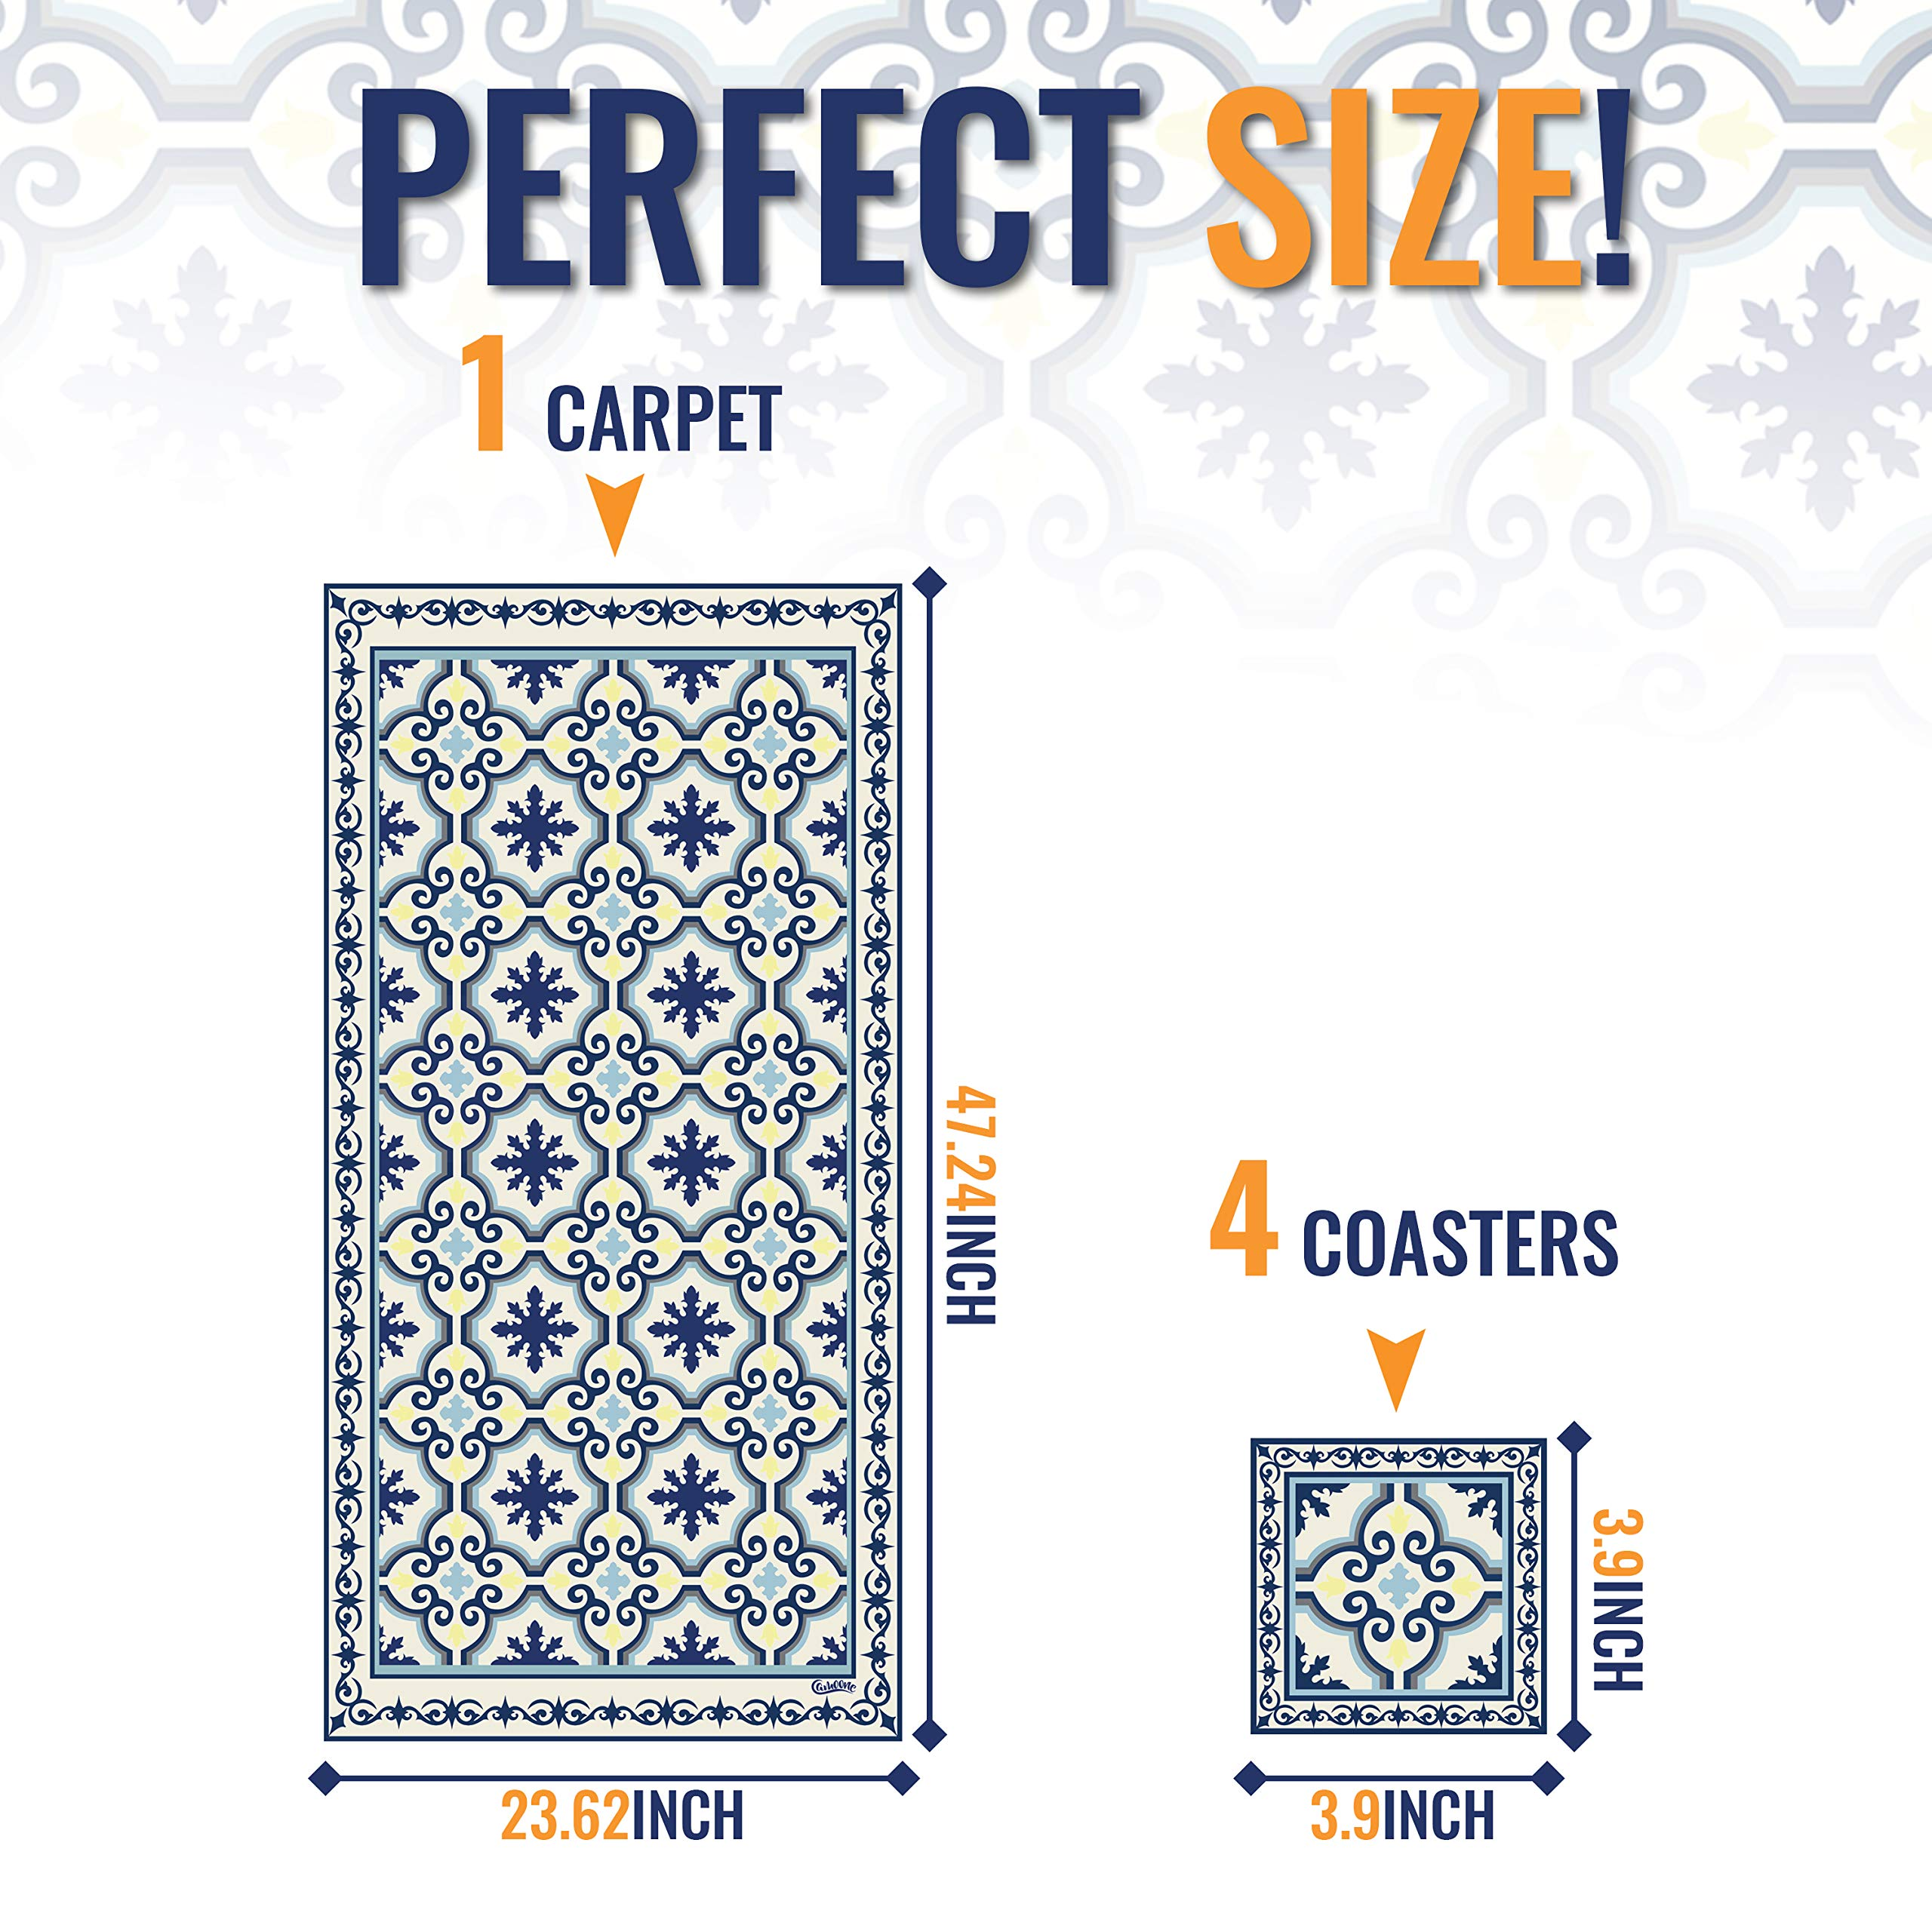 Camoone Non Slip Kitchen Mat + 4 Free Coasters - (Greek Garden) Blue & Off-White Decorative Vinyl Kitchen Floor Mat - Hypoallergenic, Insulated, Non-Fading, Easy to Clean and Non-Toxic''47.2x23.6x0.08'' by Camoone (Image #5)